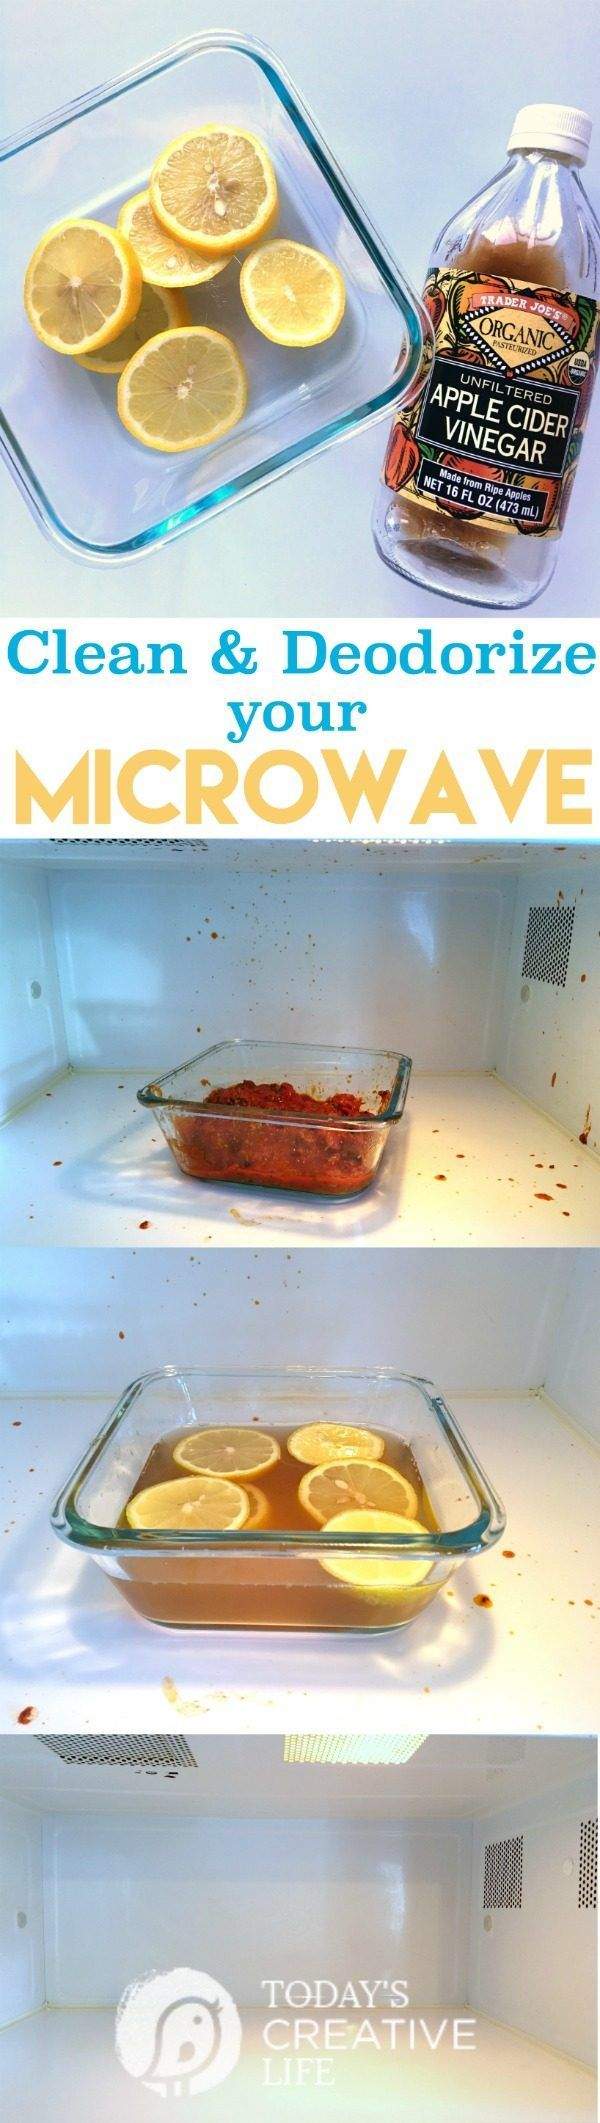 How To Clean And Deodorize A Microwave